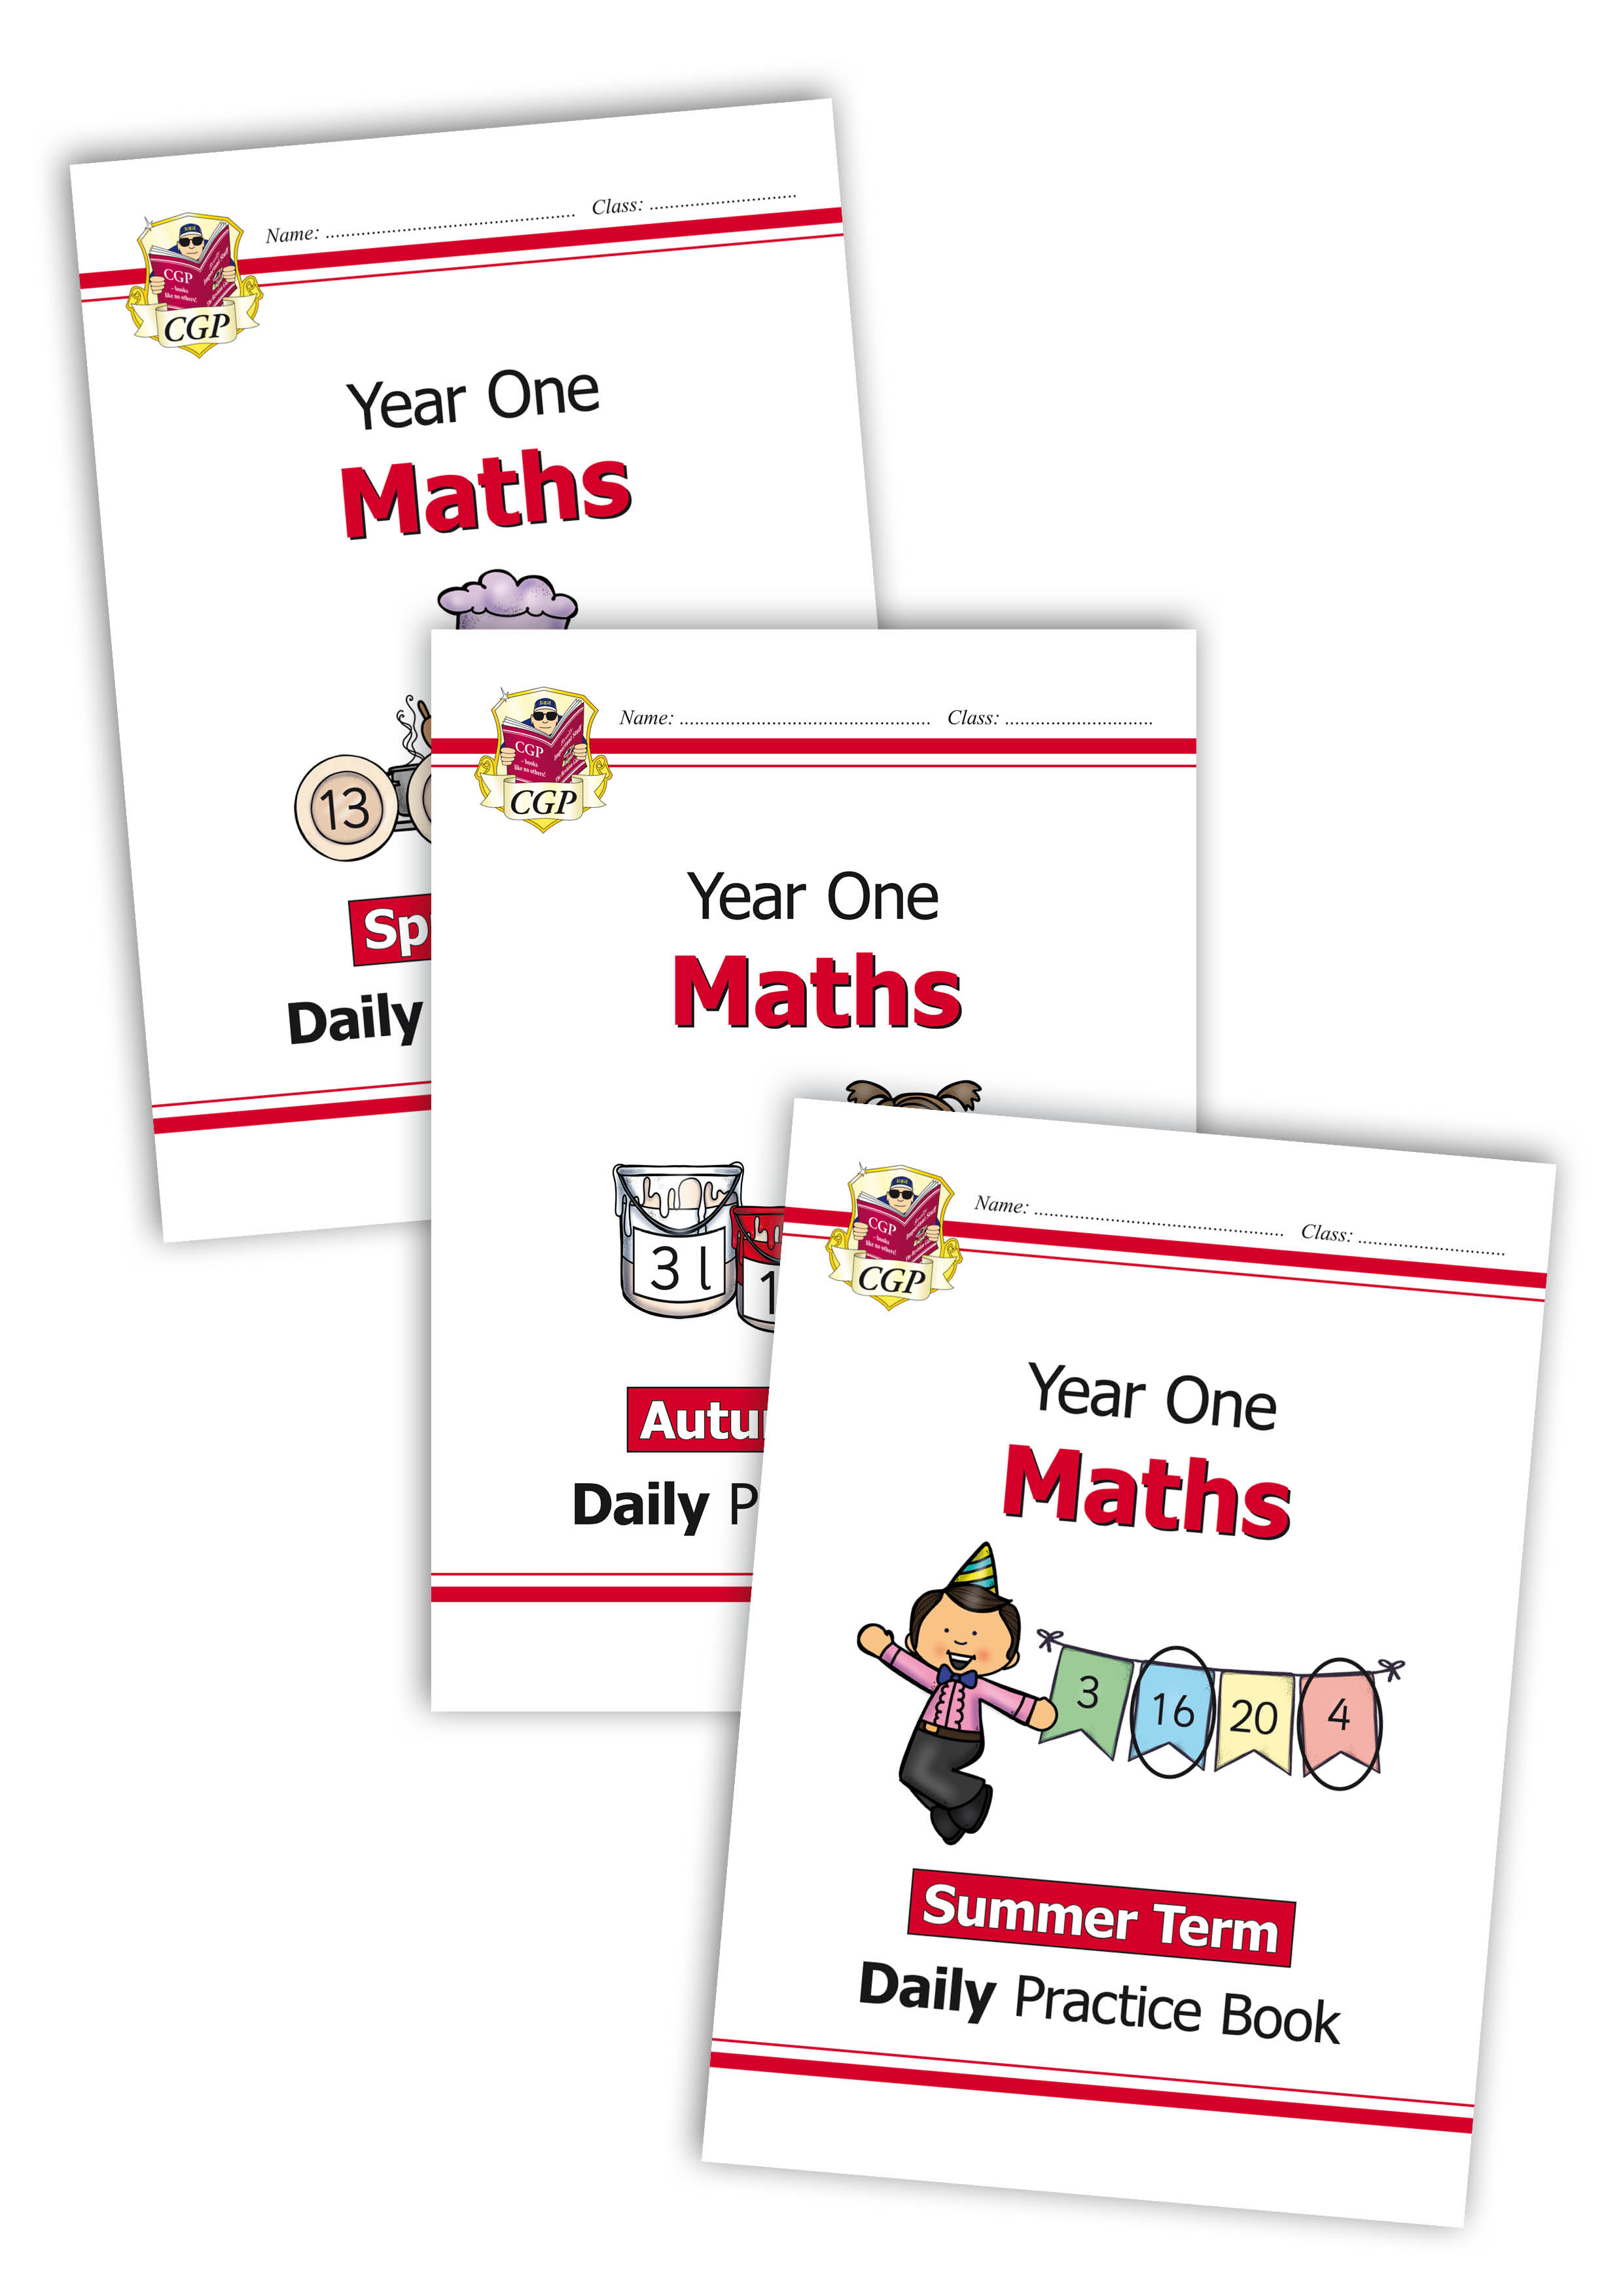 M1WB11 - New KS1 Maths Daily Practice Book Bundle: Year 1 - Autumn Term, Spring Term & Summer Term